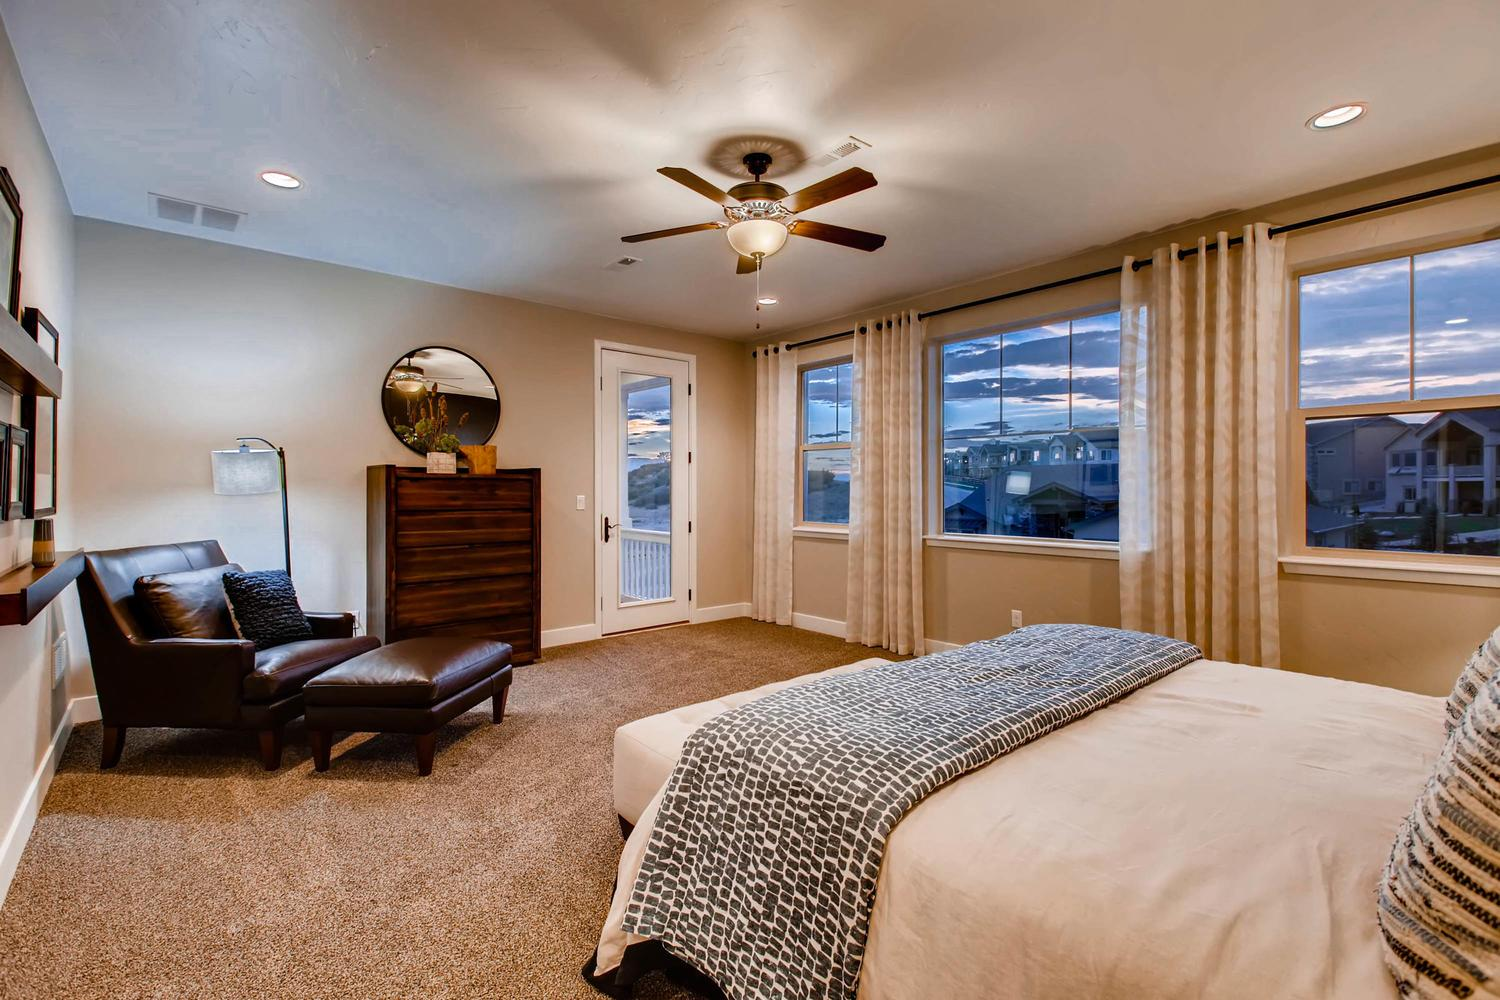 Bedroom featured in the Grand Mesa By Classic Homes in Colorado Springs, CO